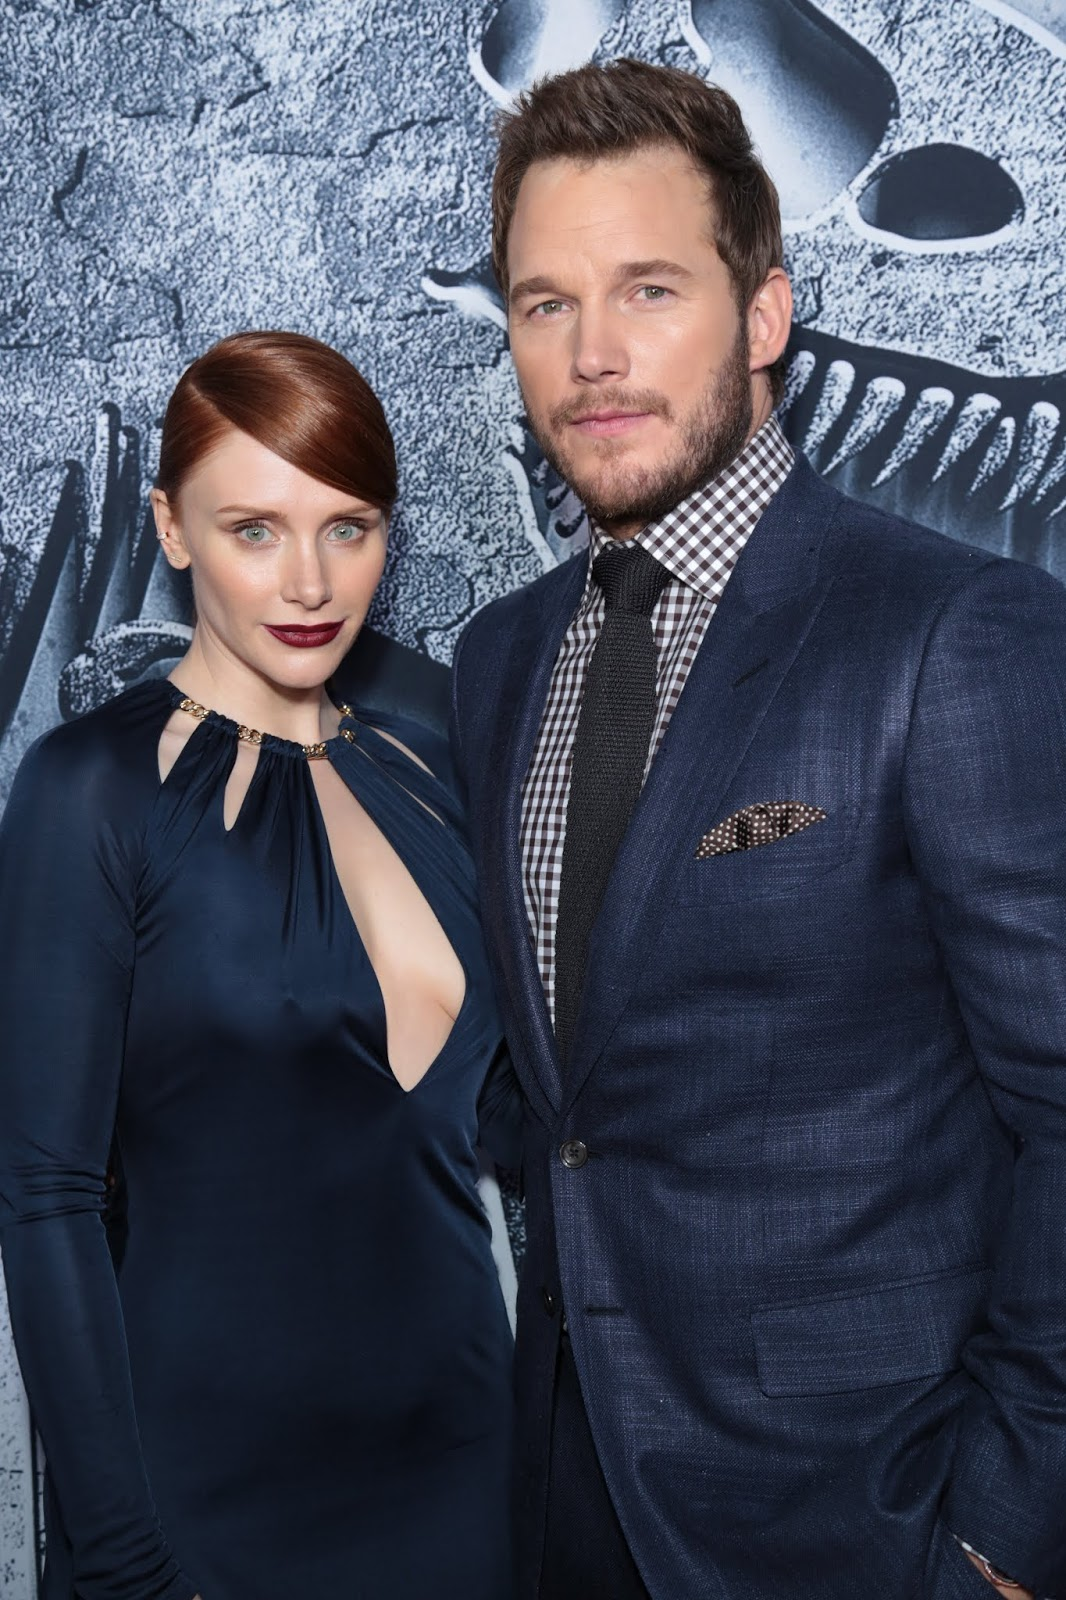 Chris Pratt and Bryce Dallas Howard at the LA Premiere